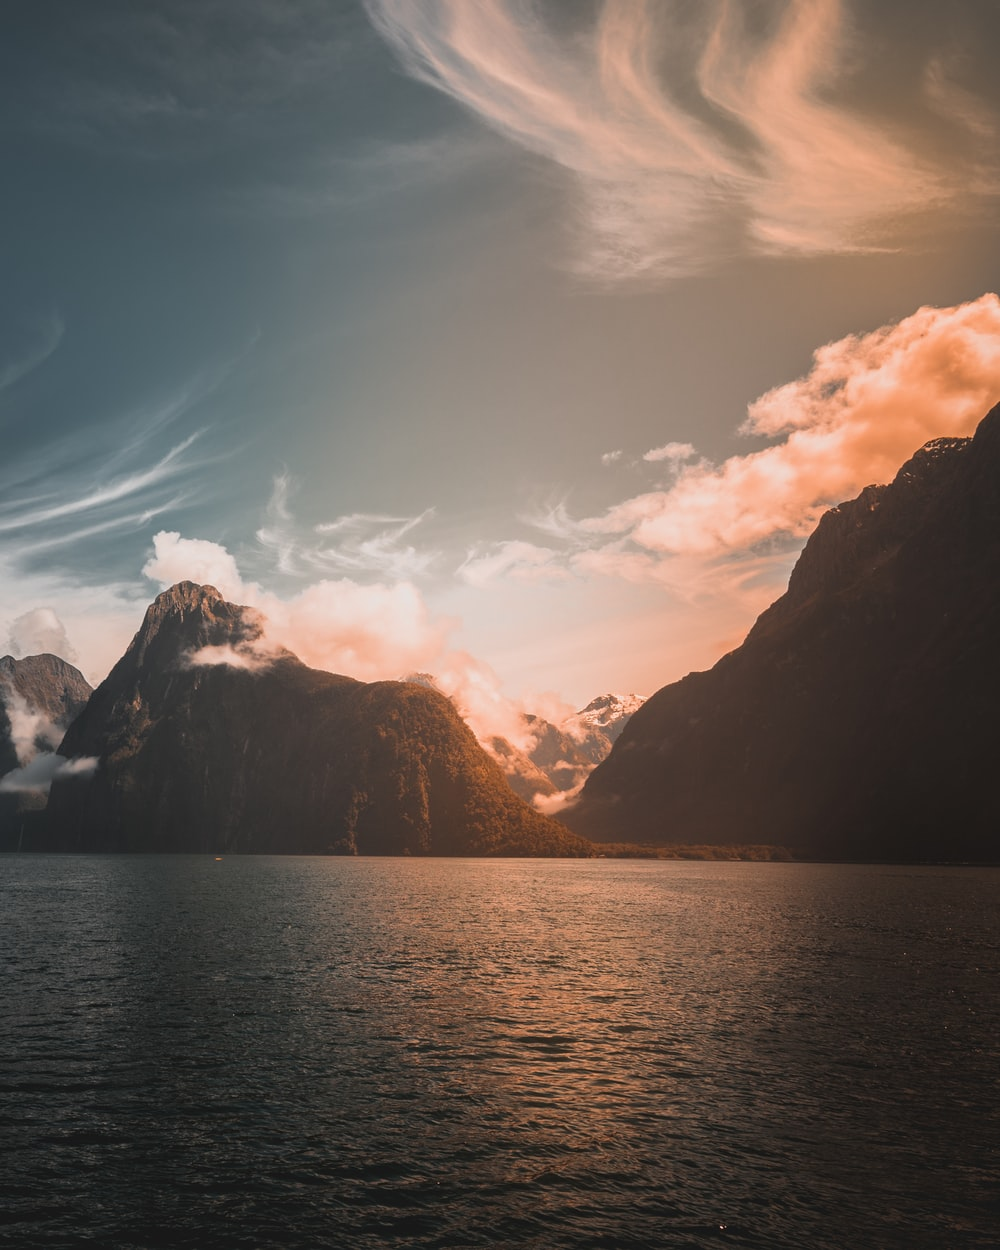 mountains near body of water during golden time